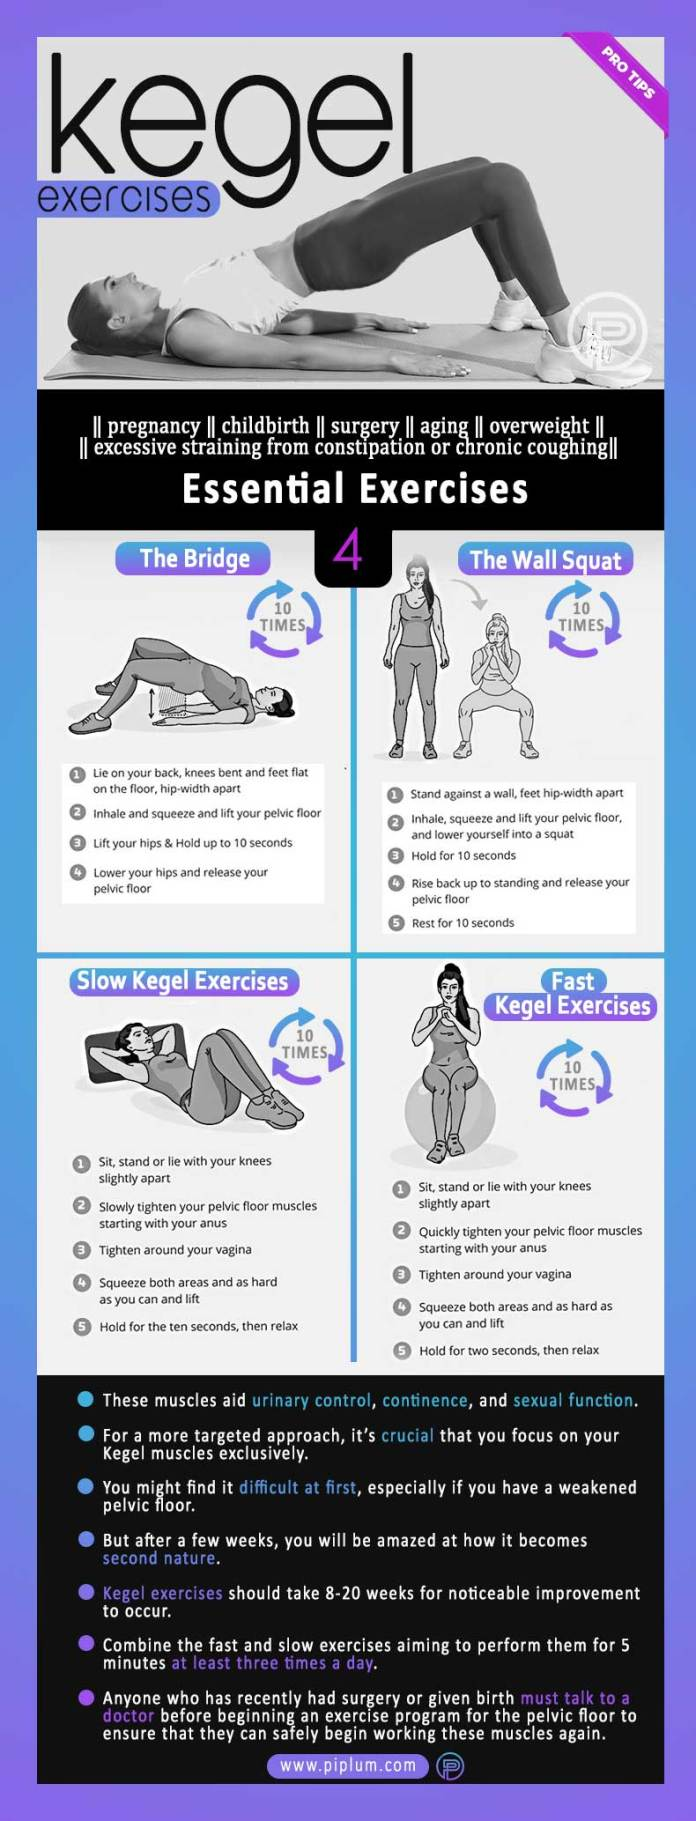 Kegel-Exercises-For-Women-During-Pregnancy-After-Childbirth-Surgery-Aging-Poster